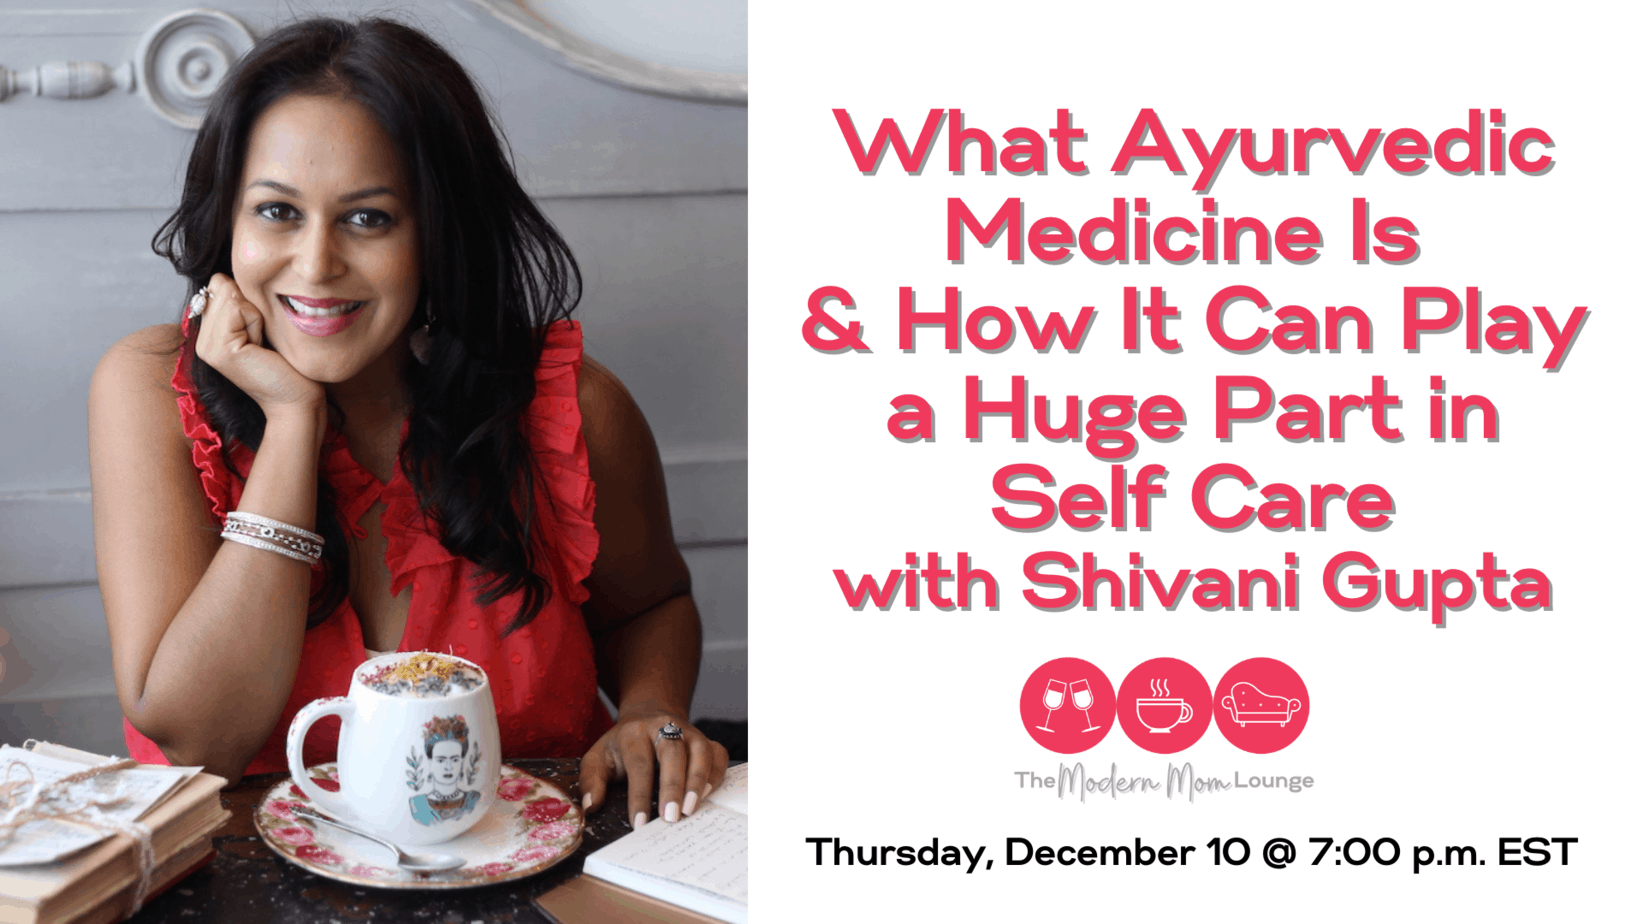 What Ayurvedic Medicine Is & How It Can Play a Huge Part in Self Care!